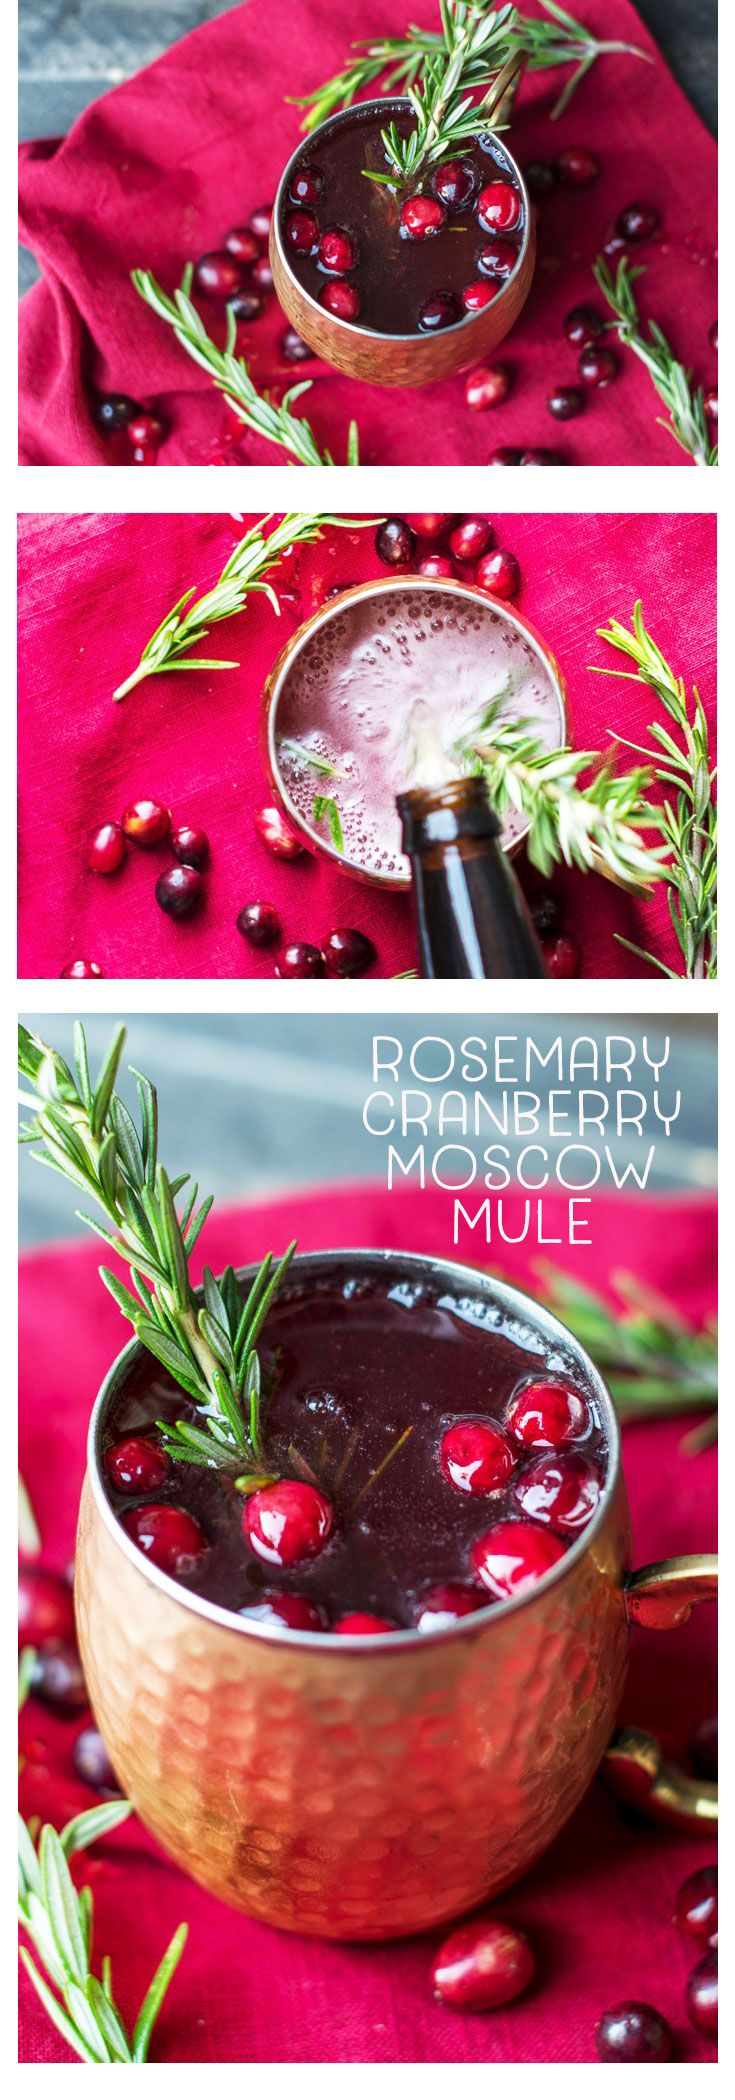 Looking for a holiday drink recipe? Try this refreshing, unique, and festive Rosemary and Cranberry Moscow Mule that features tastes of the holiday season! #cranberry #moscowmule #holidaydrink #drinkrecipe #Christmascocktail #cocktailrecipe #rosemary via @MrsMajorHoff